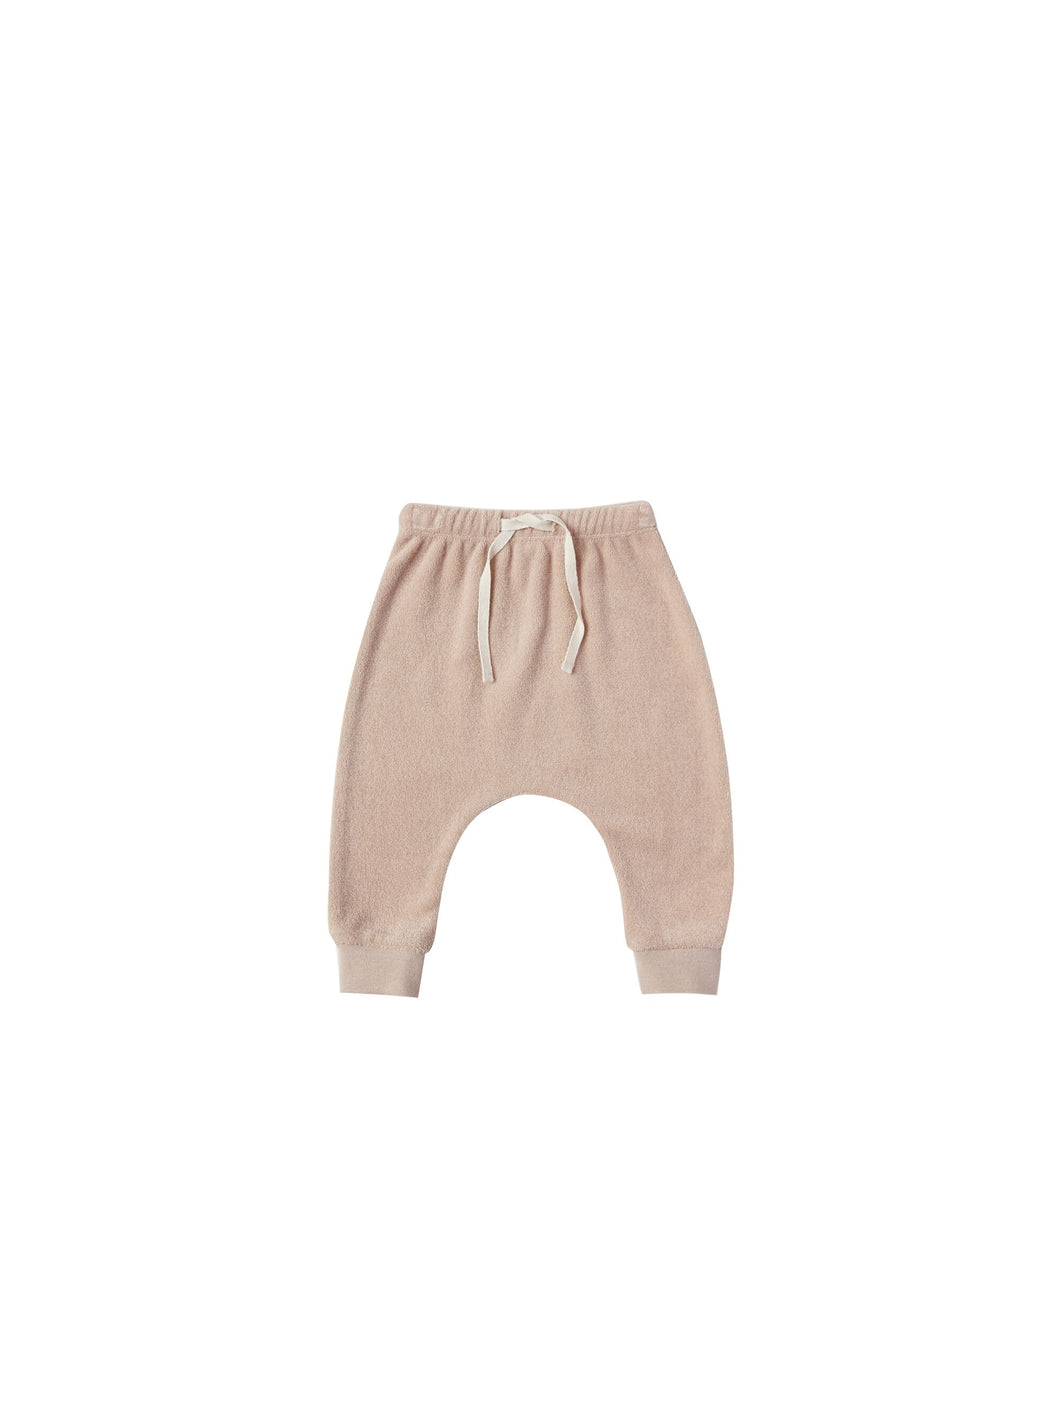 Quincy Mae Terry Cloth Sweatpants - Petal